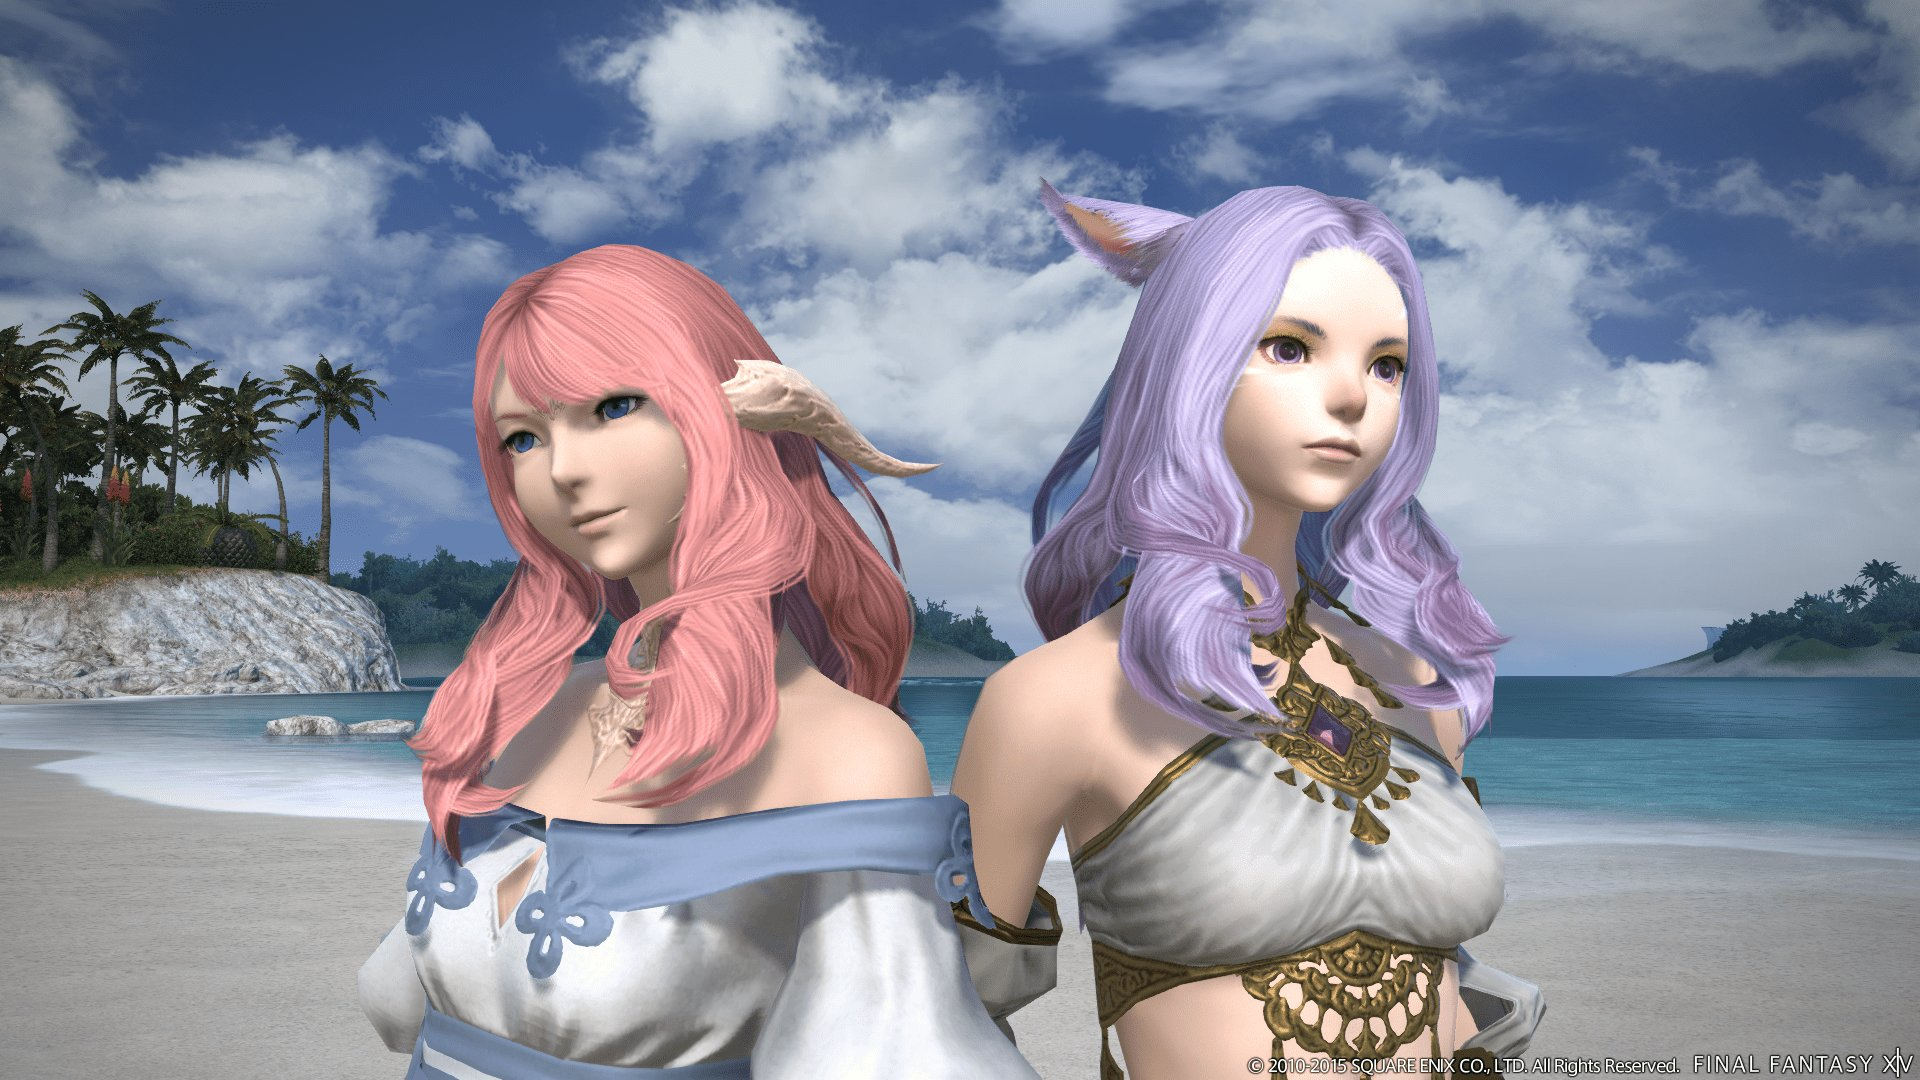 The Best Final Fantasy Xiv Gets Even More Beautiful With New Pictures